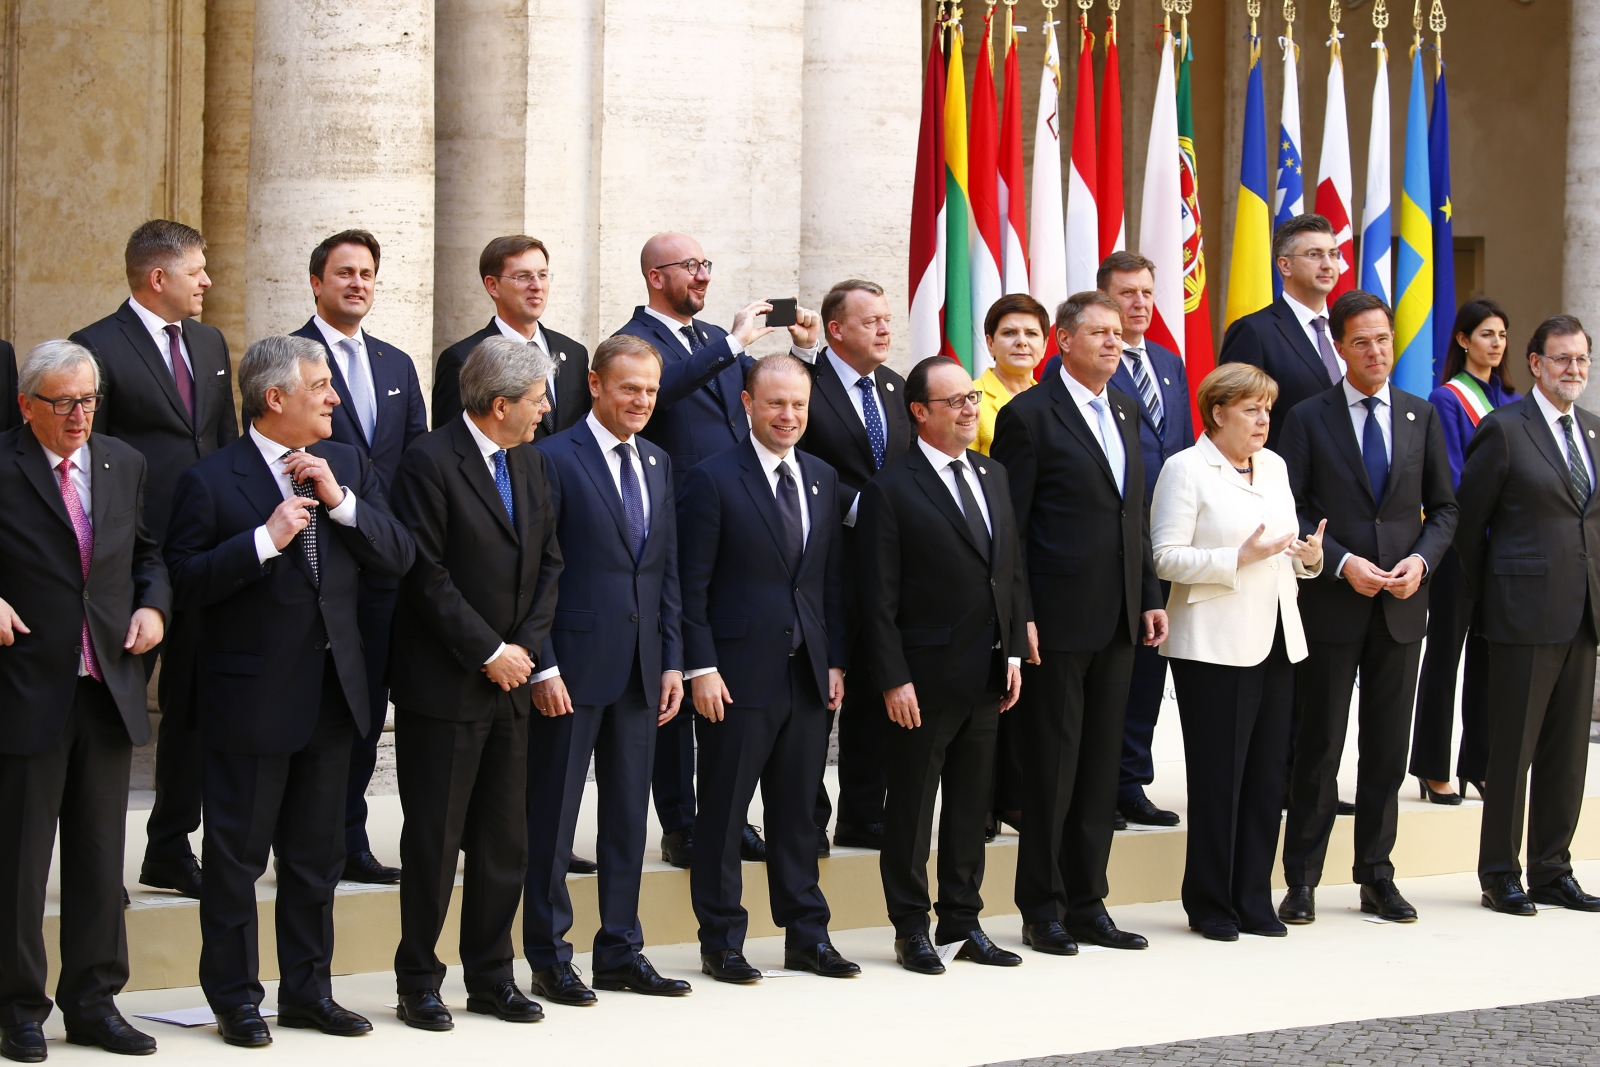 EU leaders celebrate 60th birthday of European Union in Rome